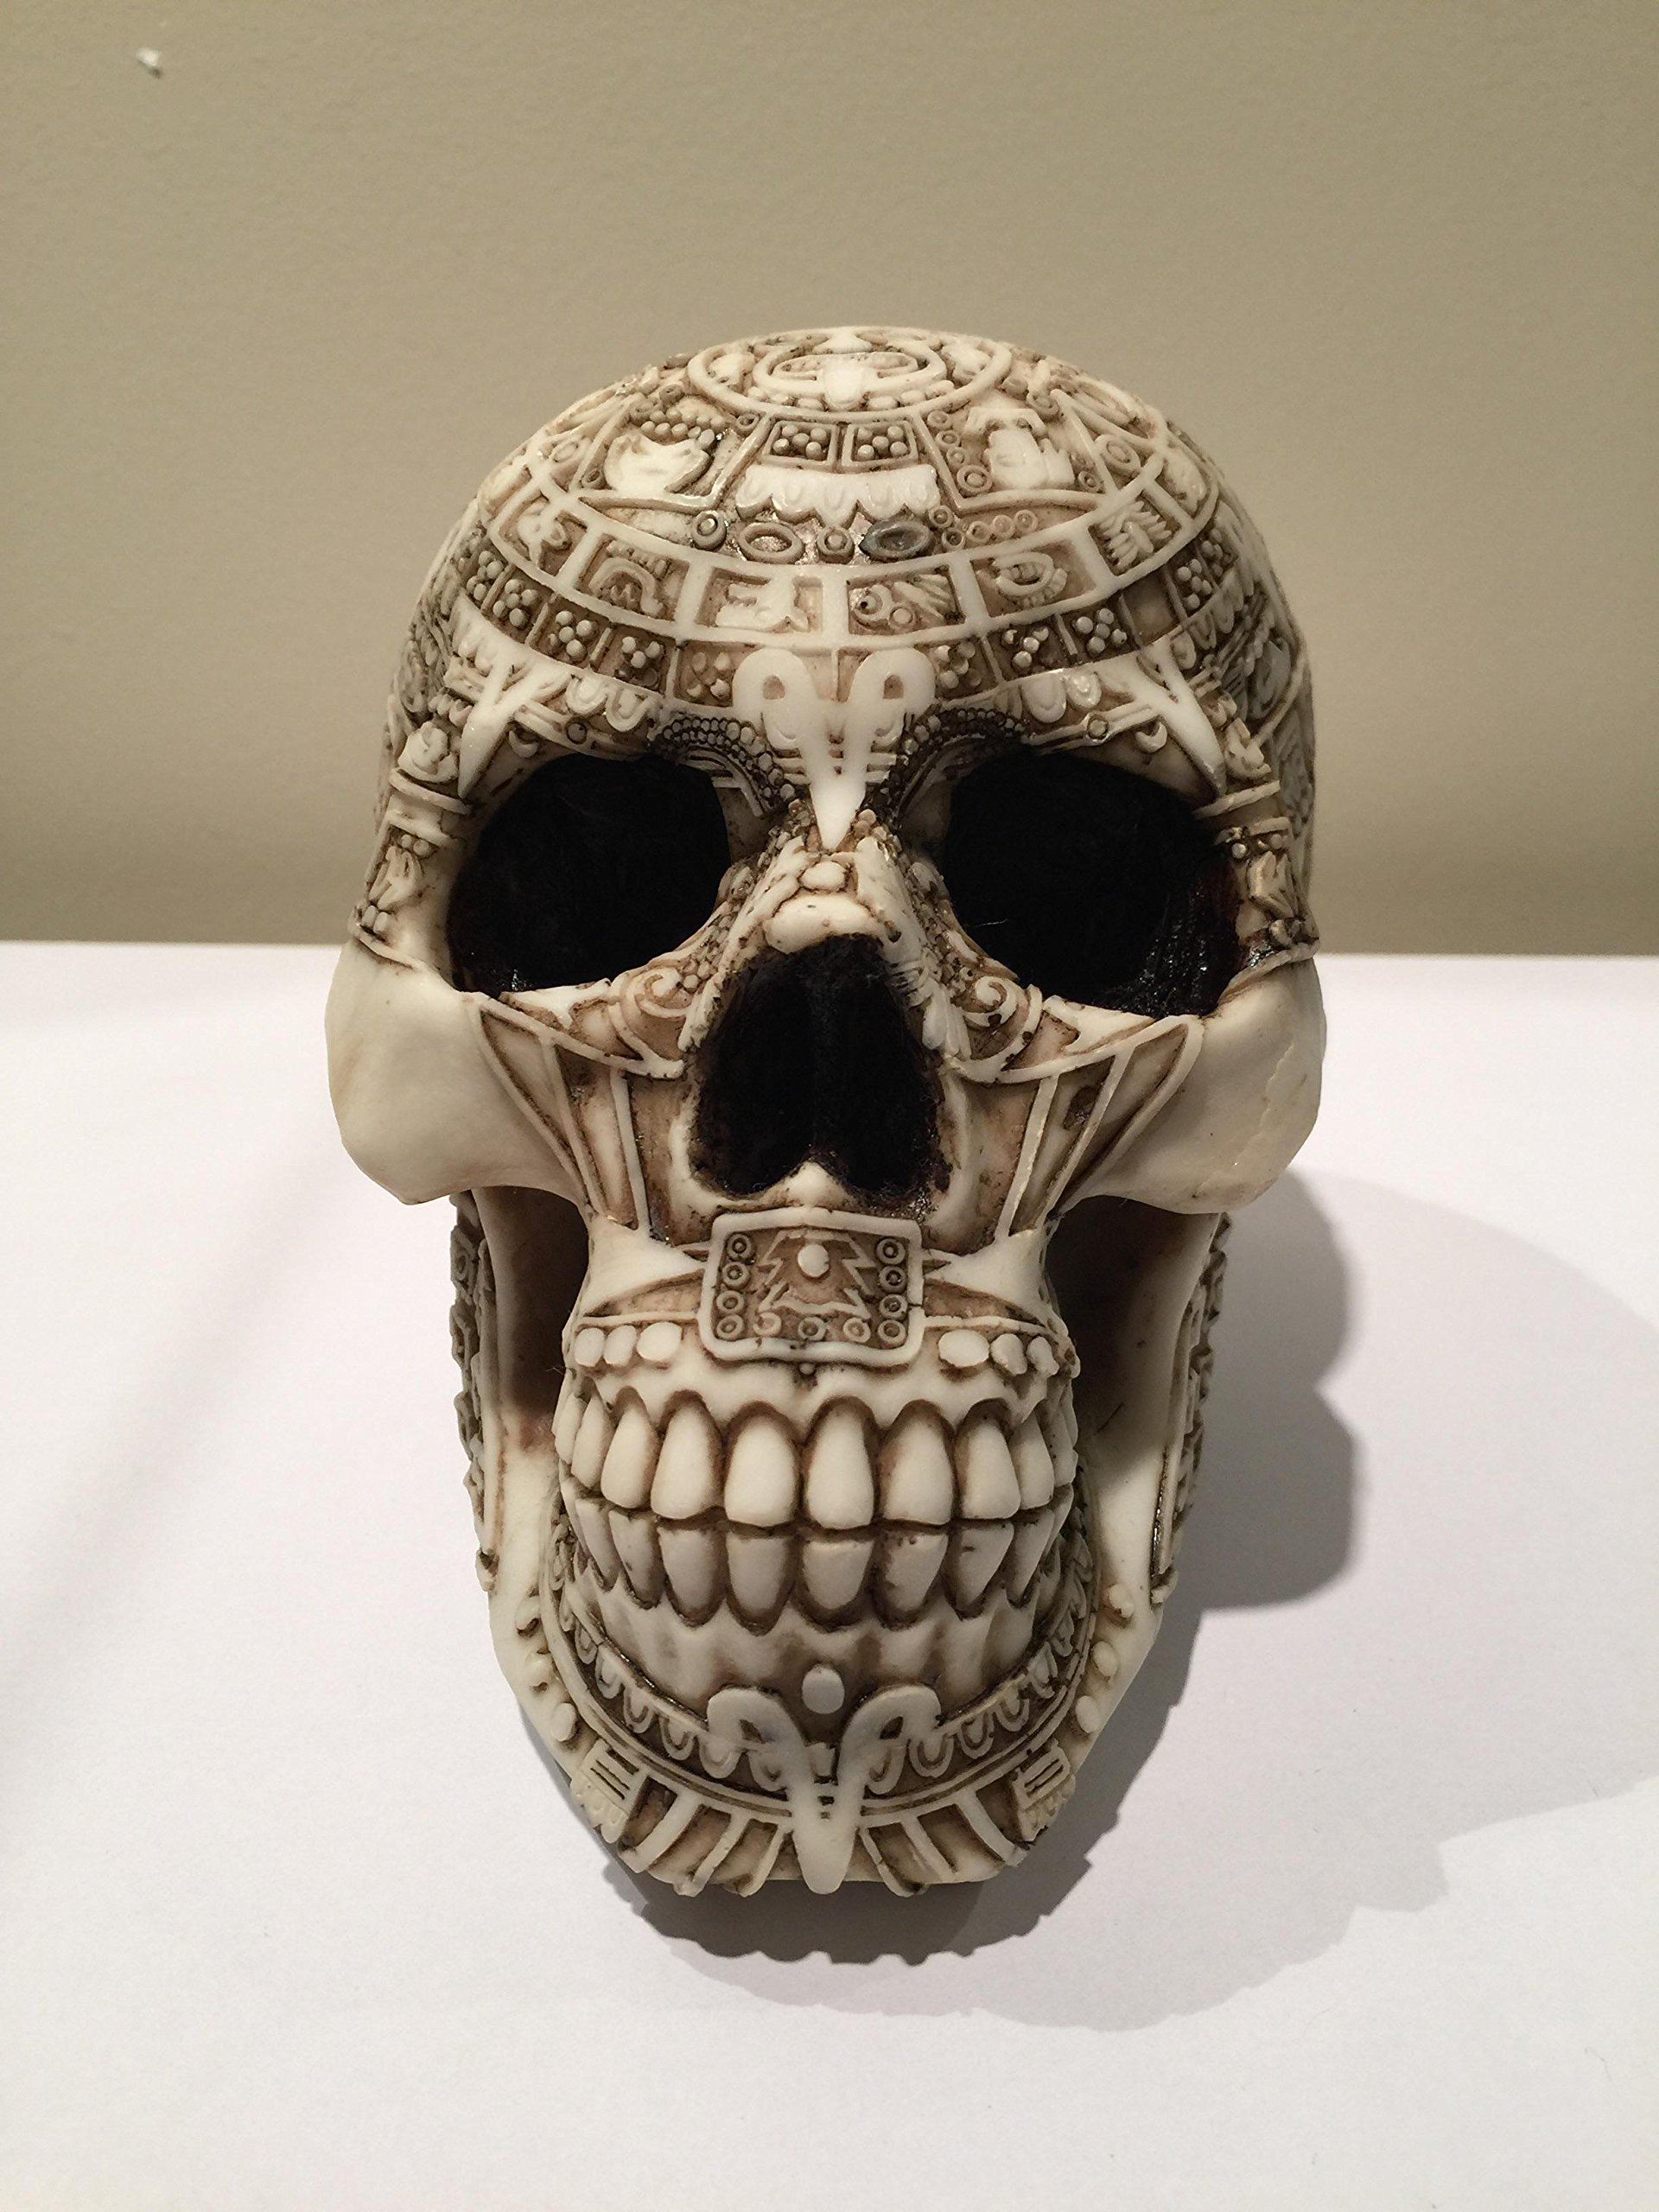 Pacific Giftware Aztec Meso America Skull Engraved with Aztec Motif Collectible Desktop Figurine Gift 6 inch